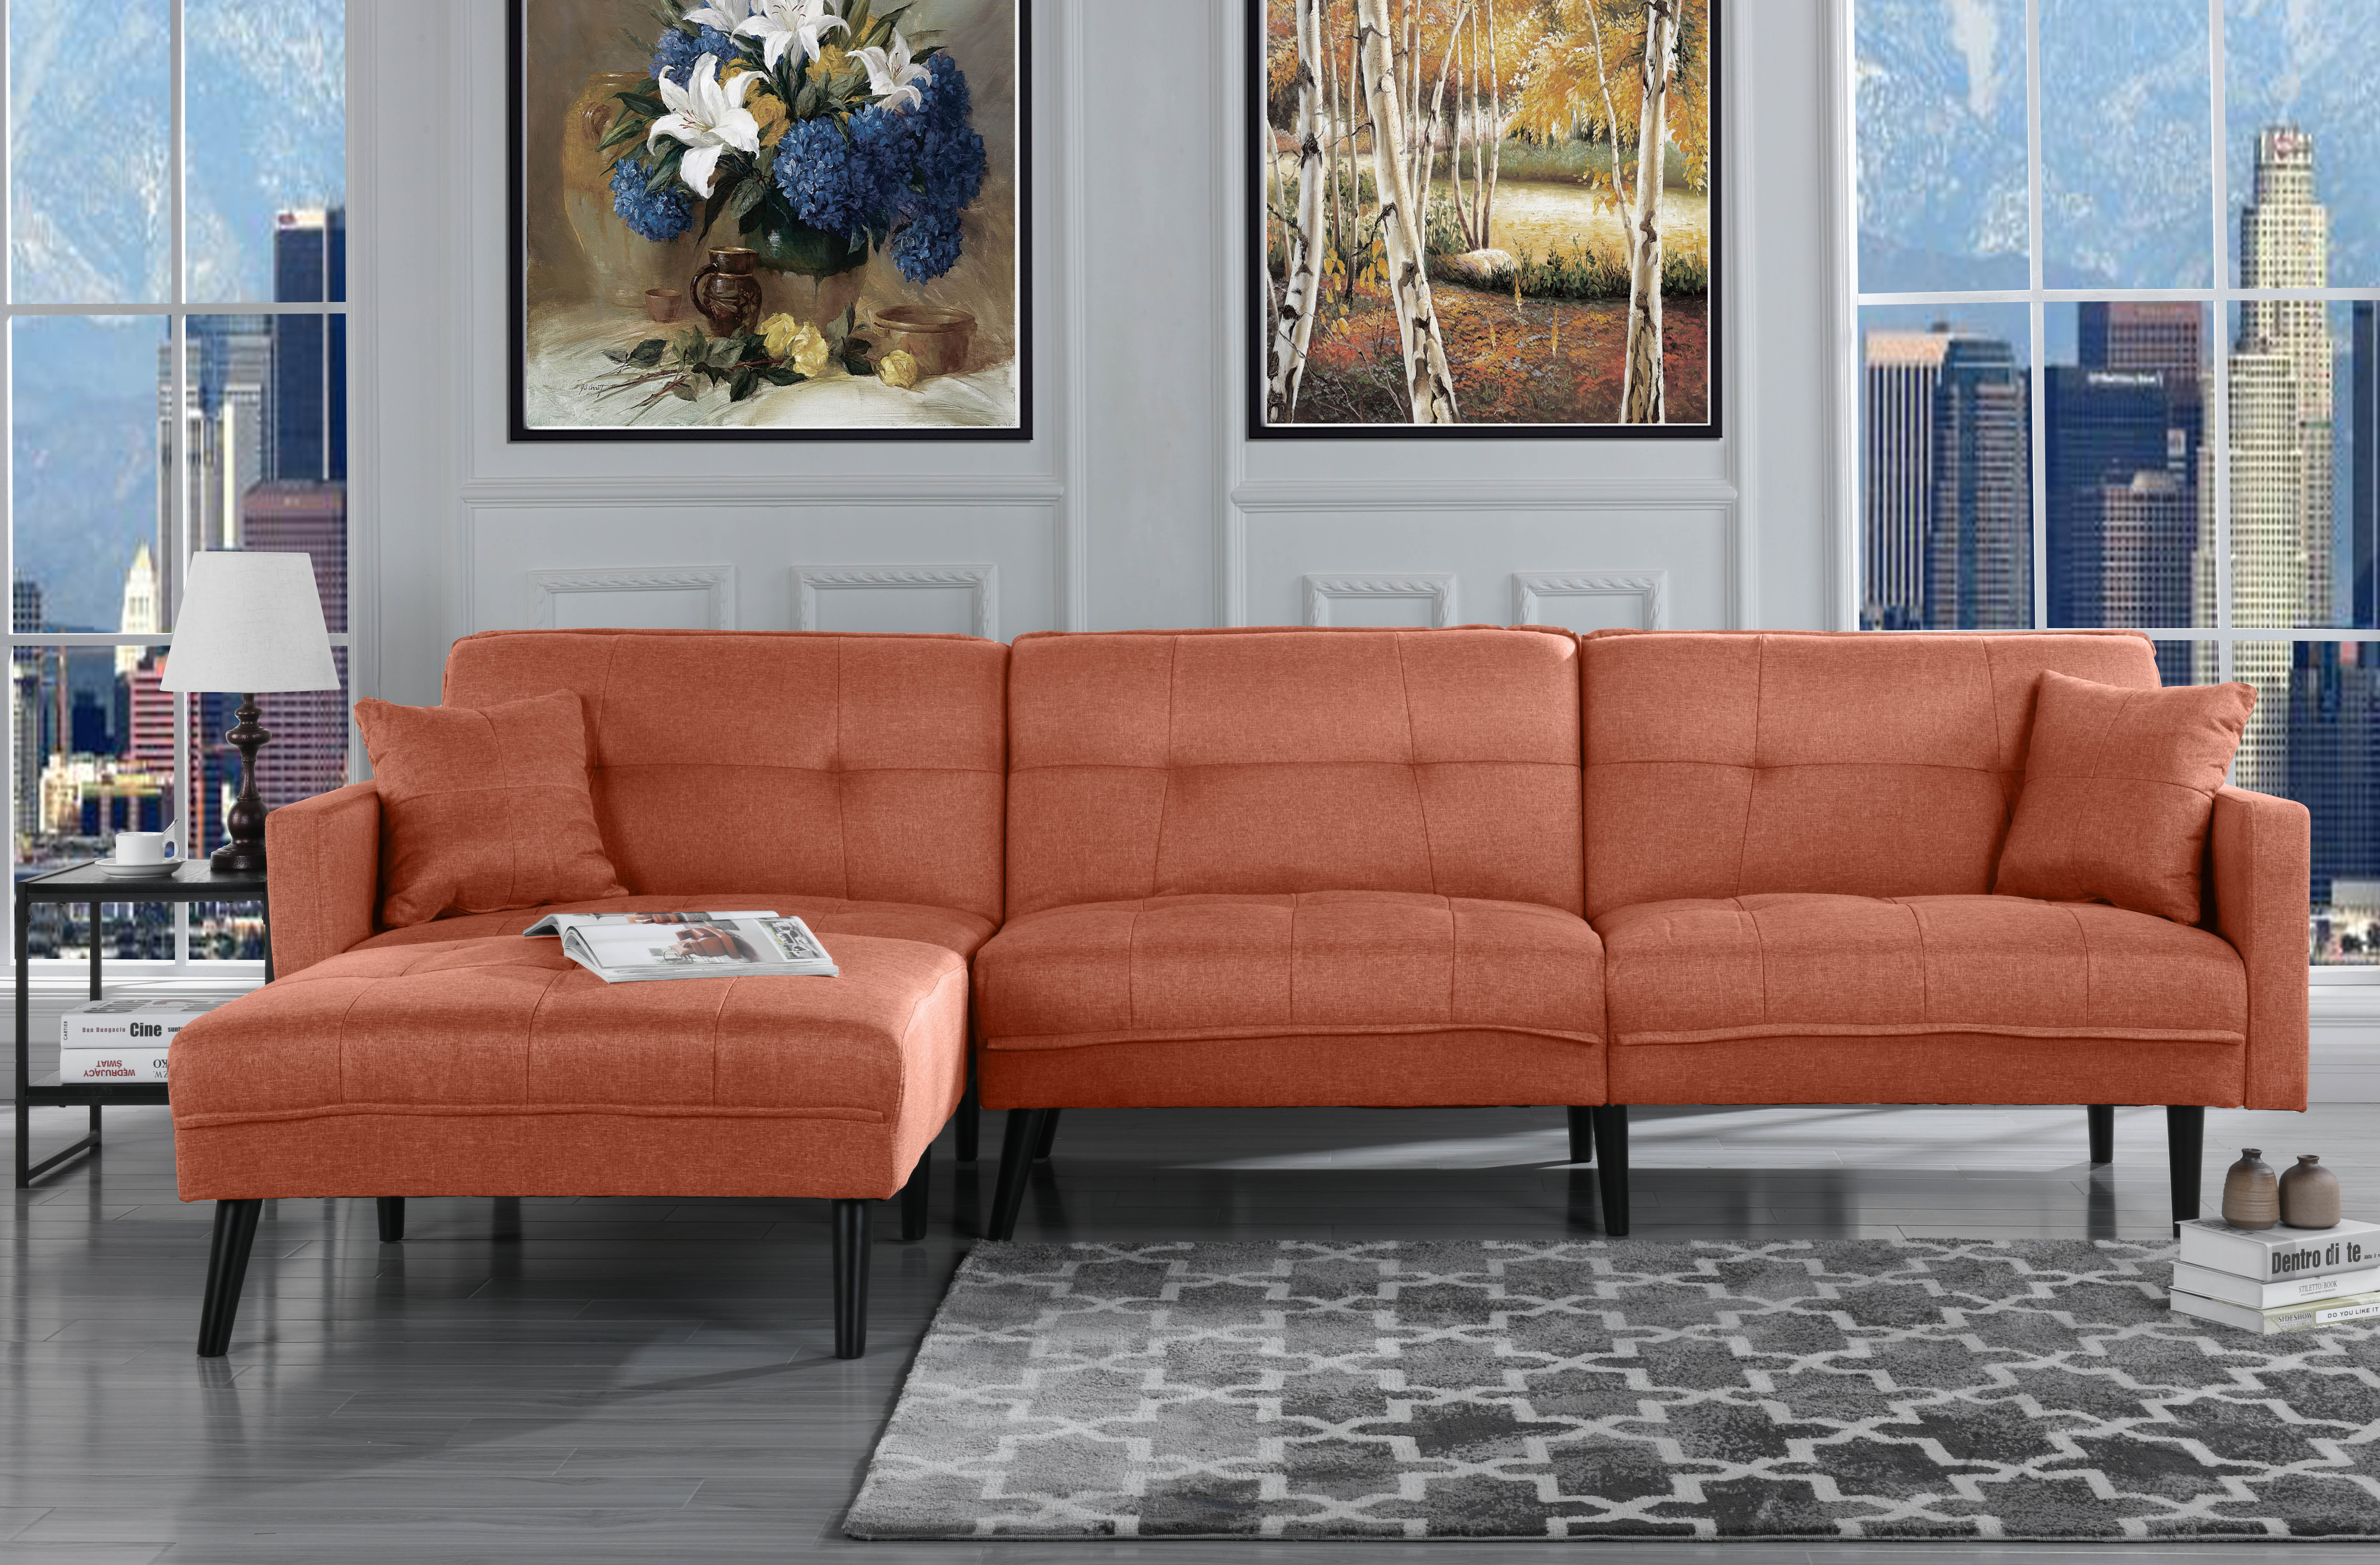 Modern Mid Century Linen Sofa Sleeper Futon Sofa, Living Room L Shape Sectional Couch with... by